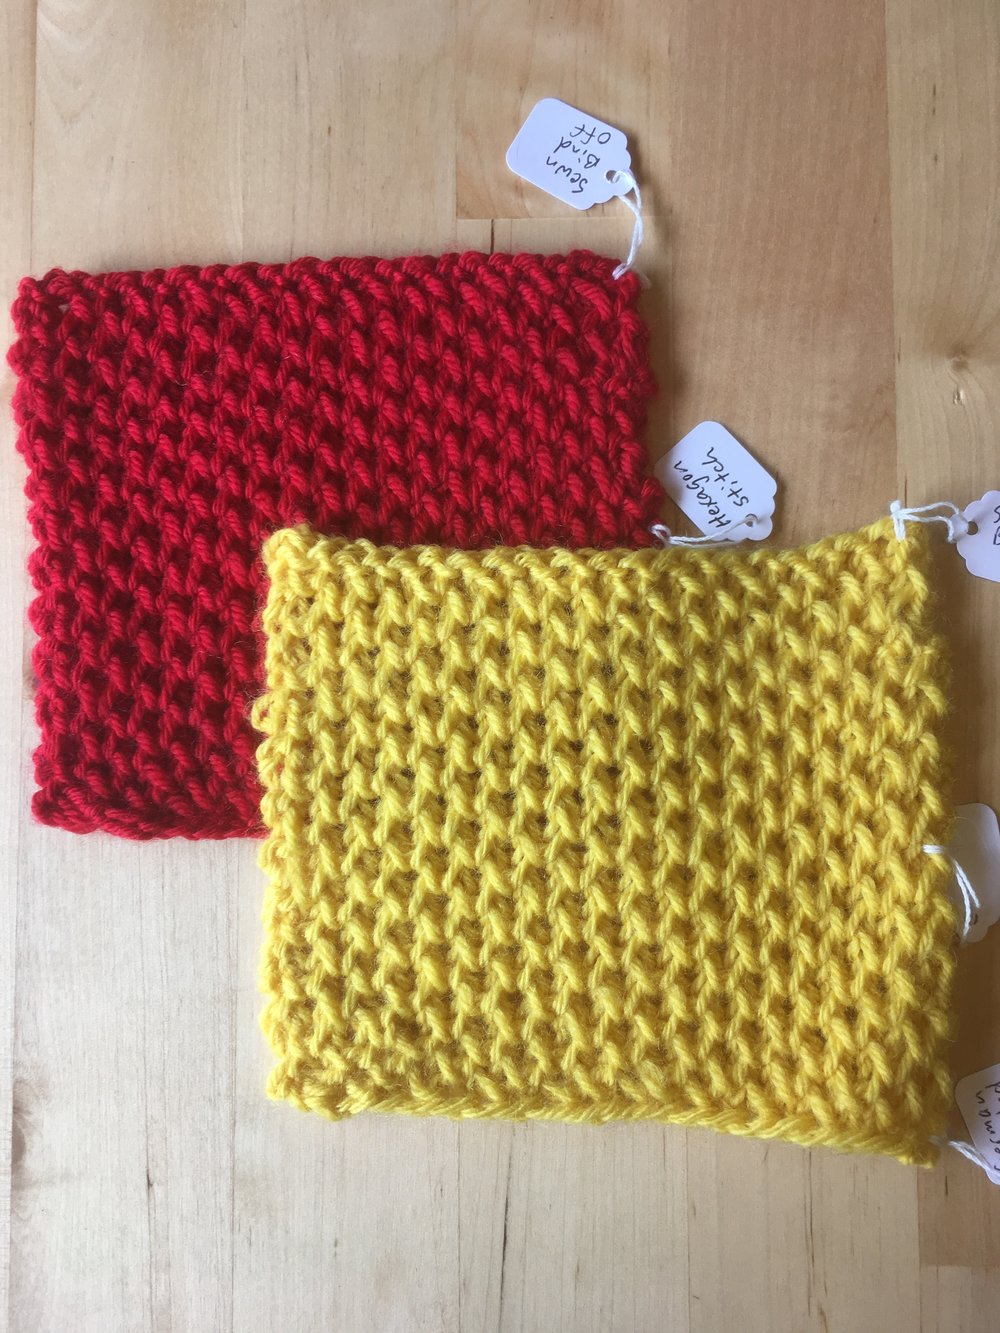 The Hexagon stitch changes appearance depending on the color used as well. It all has to do with how the texture reflects the light.